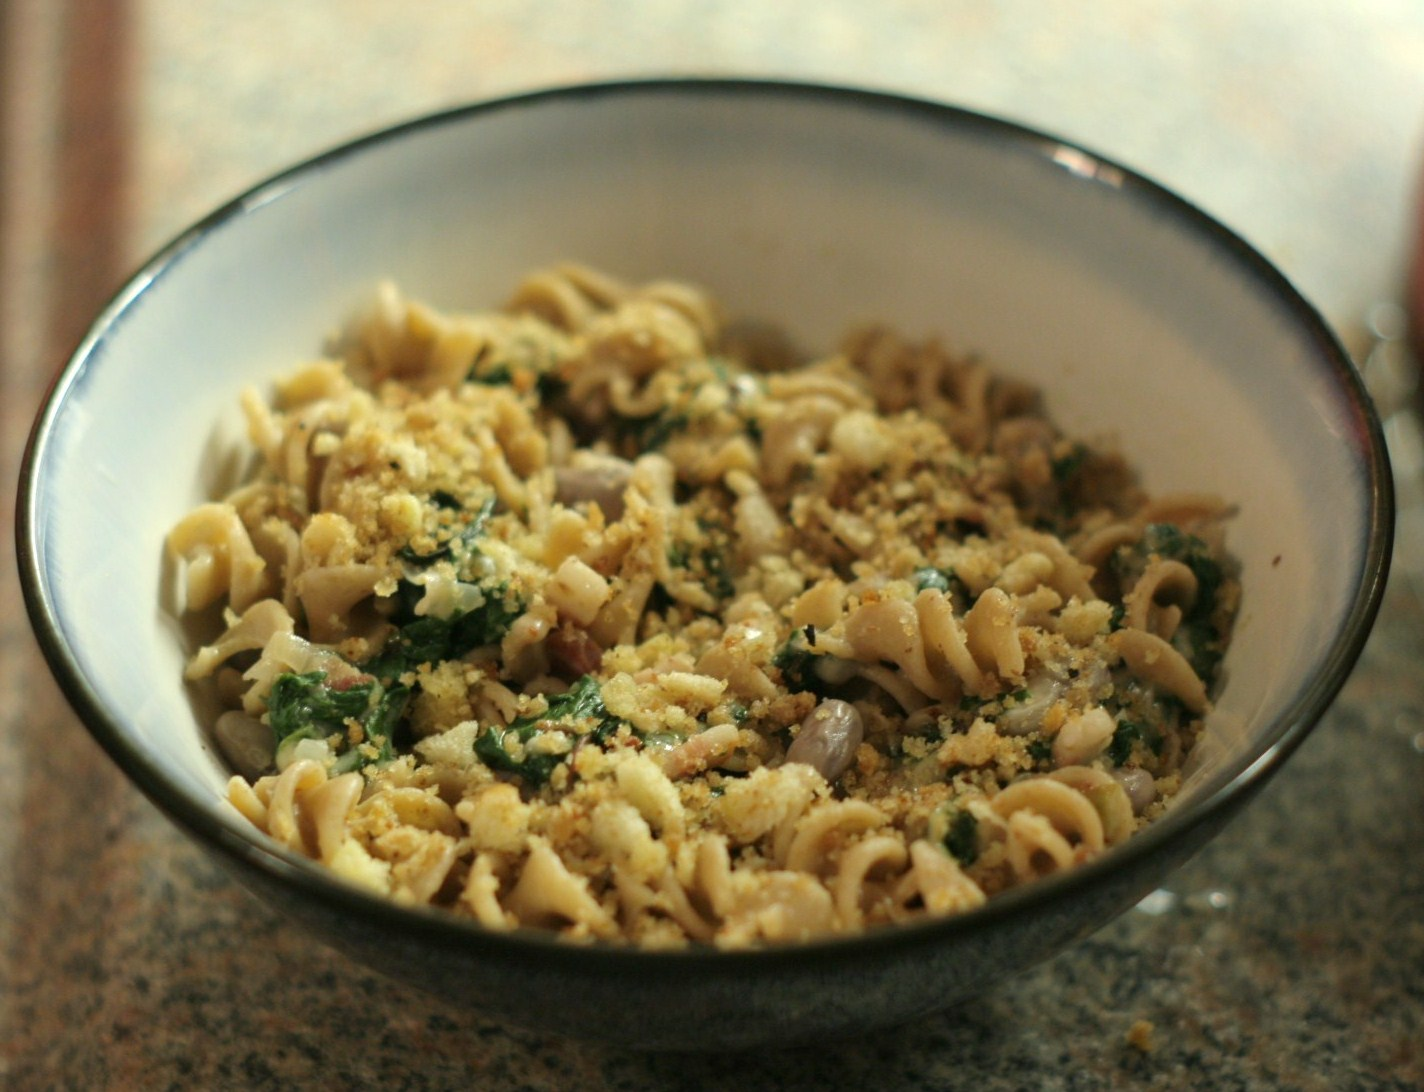 ... seasons of food: Pasta with greens, beans, and garlic bread crumbs